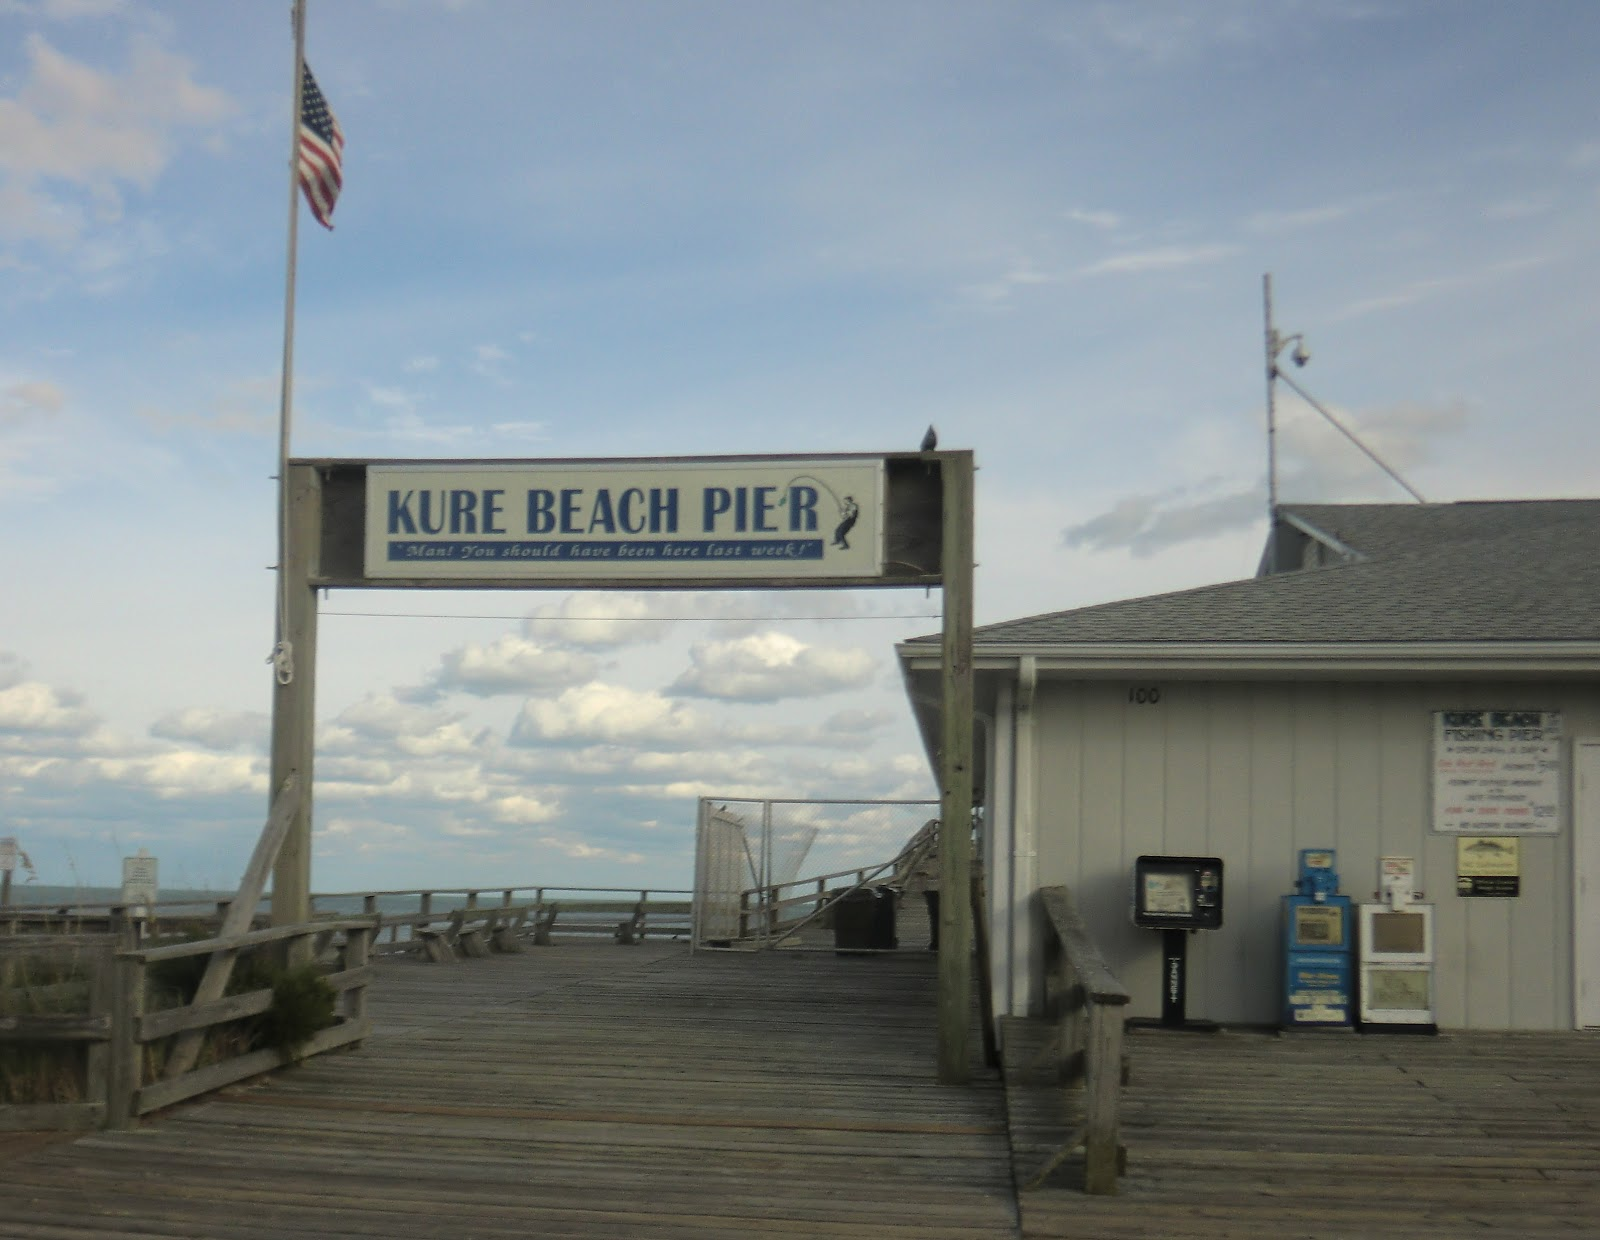 kure beach To insure current content, please remember to refresh each page as you load it.